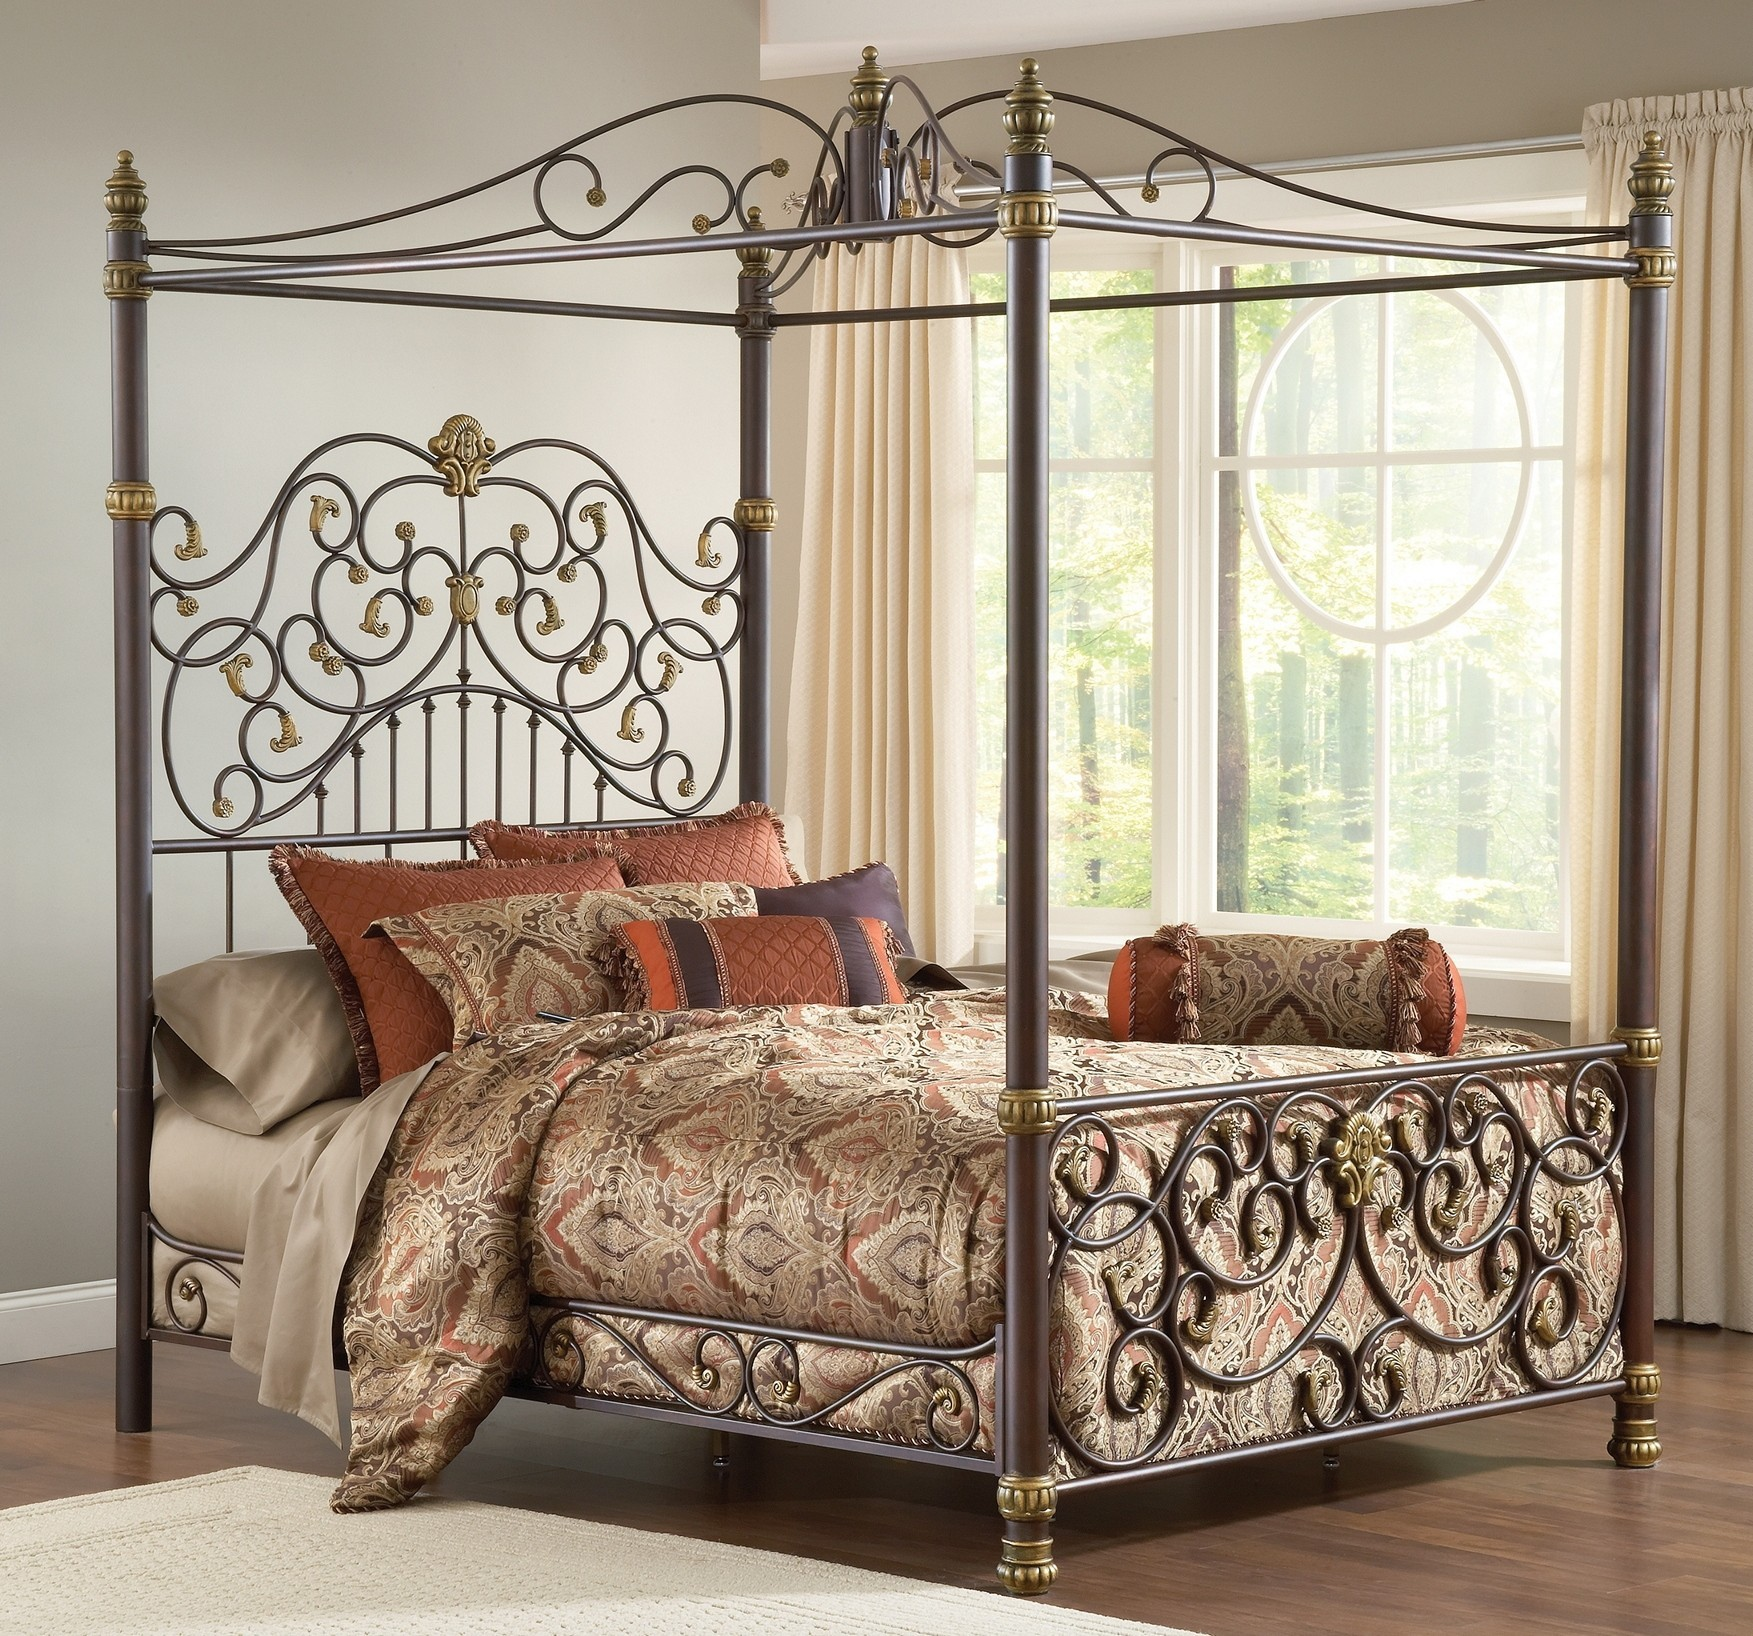 Iron canopy bed frame homesfeed for Gold canopy bed frame